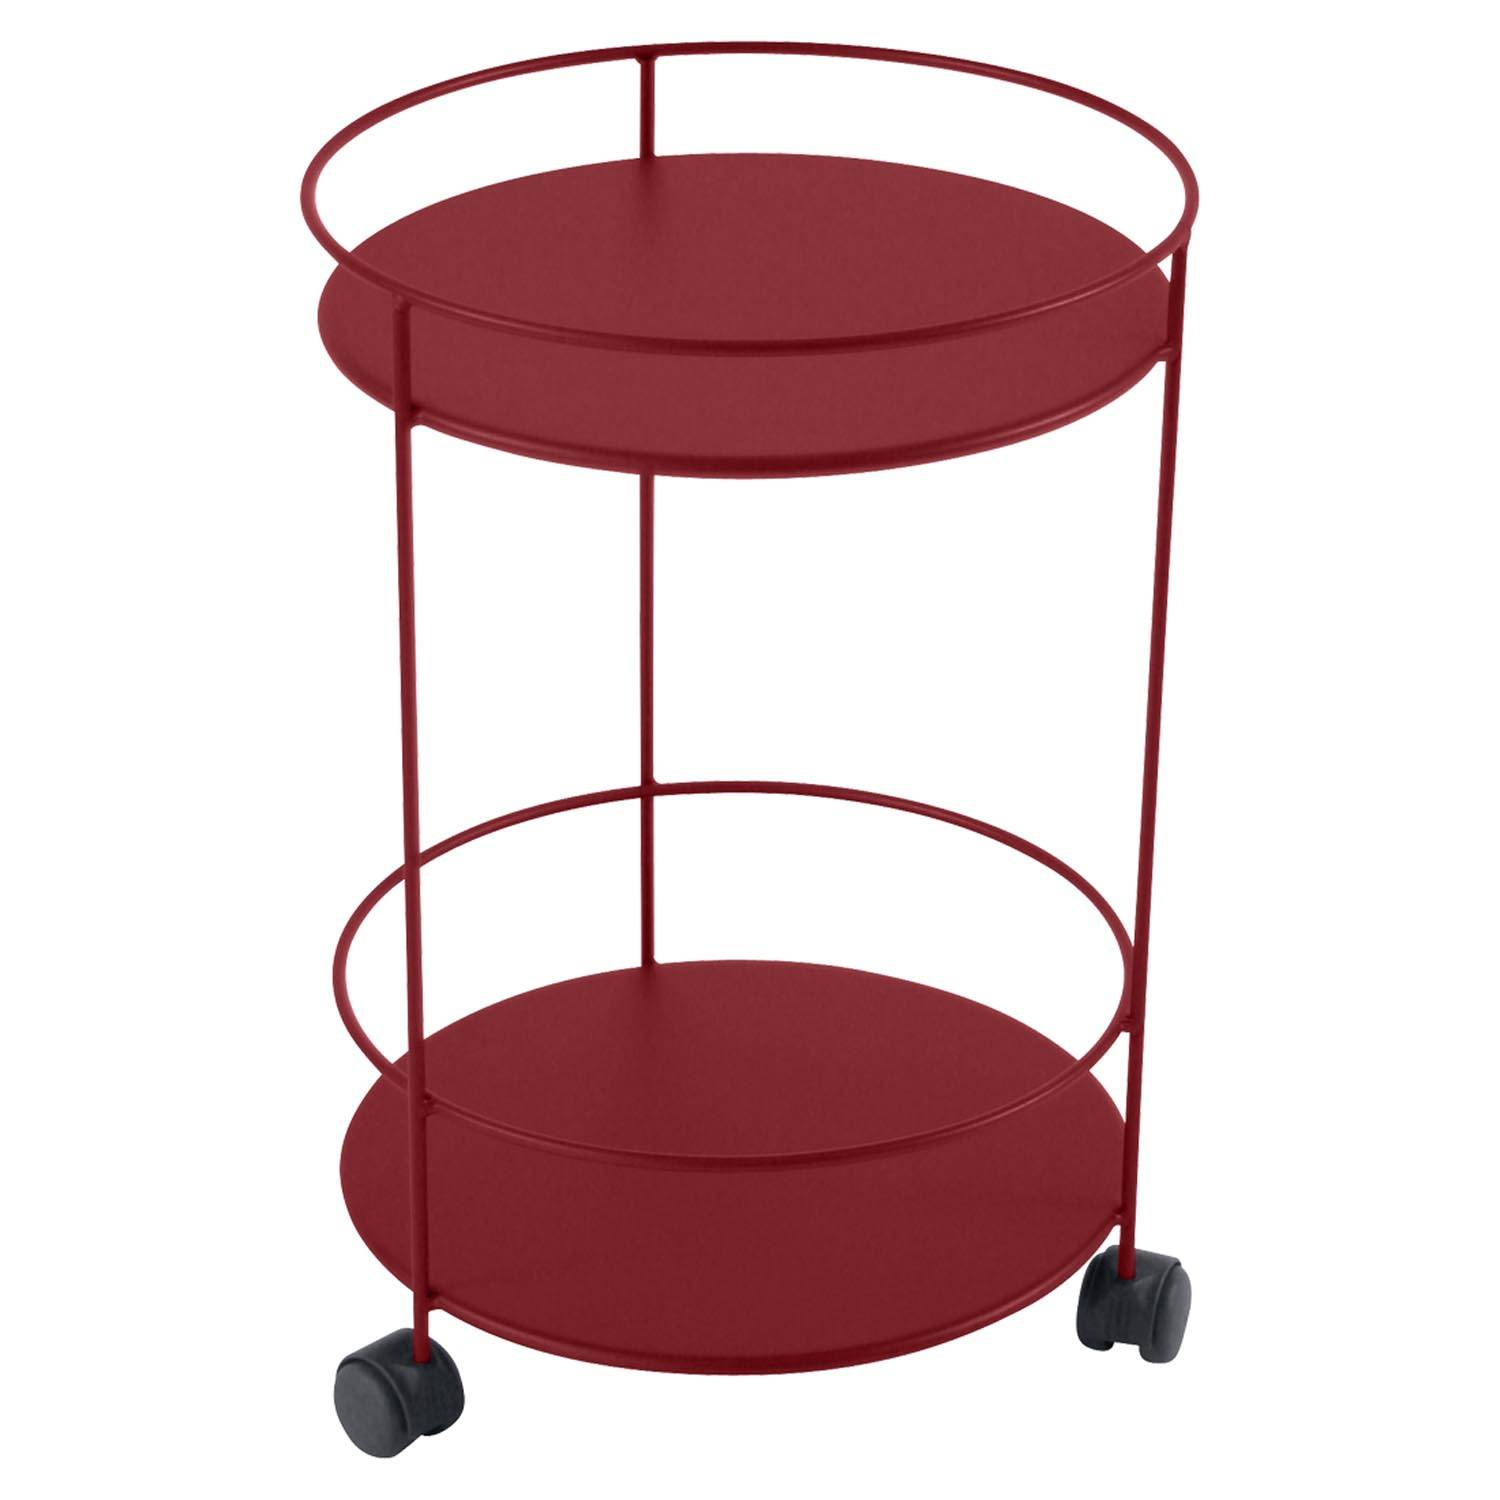 Fermob Small Table Perforated Ø40, Chili